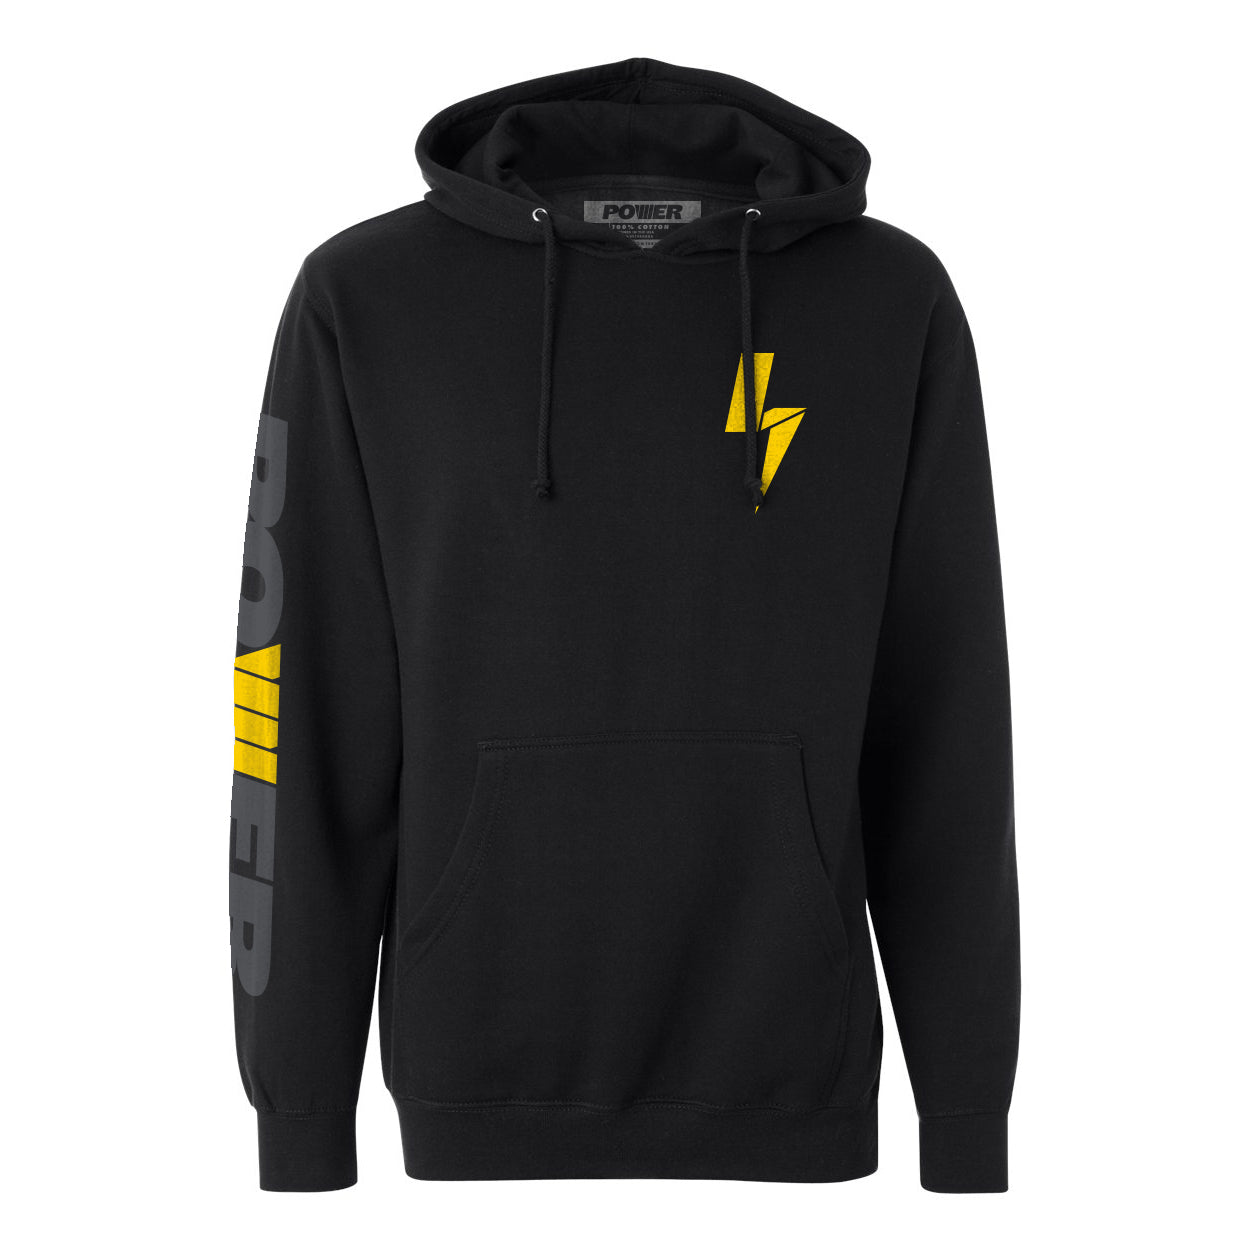 Shop - Power by Lachlan